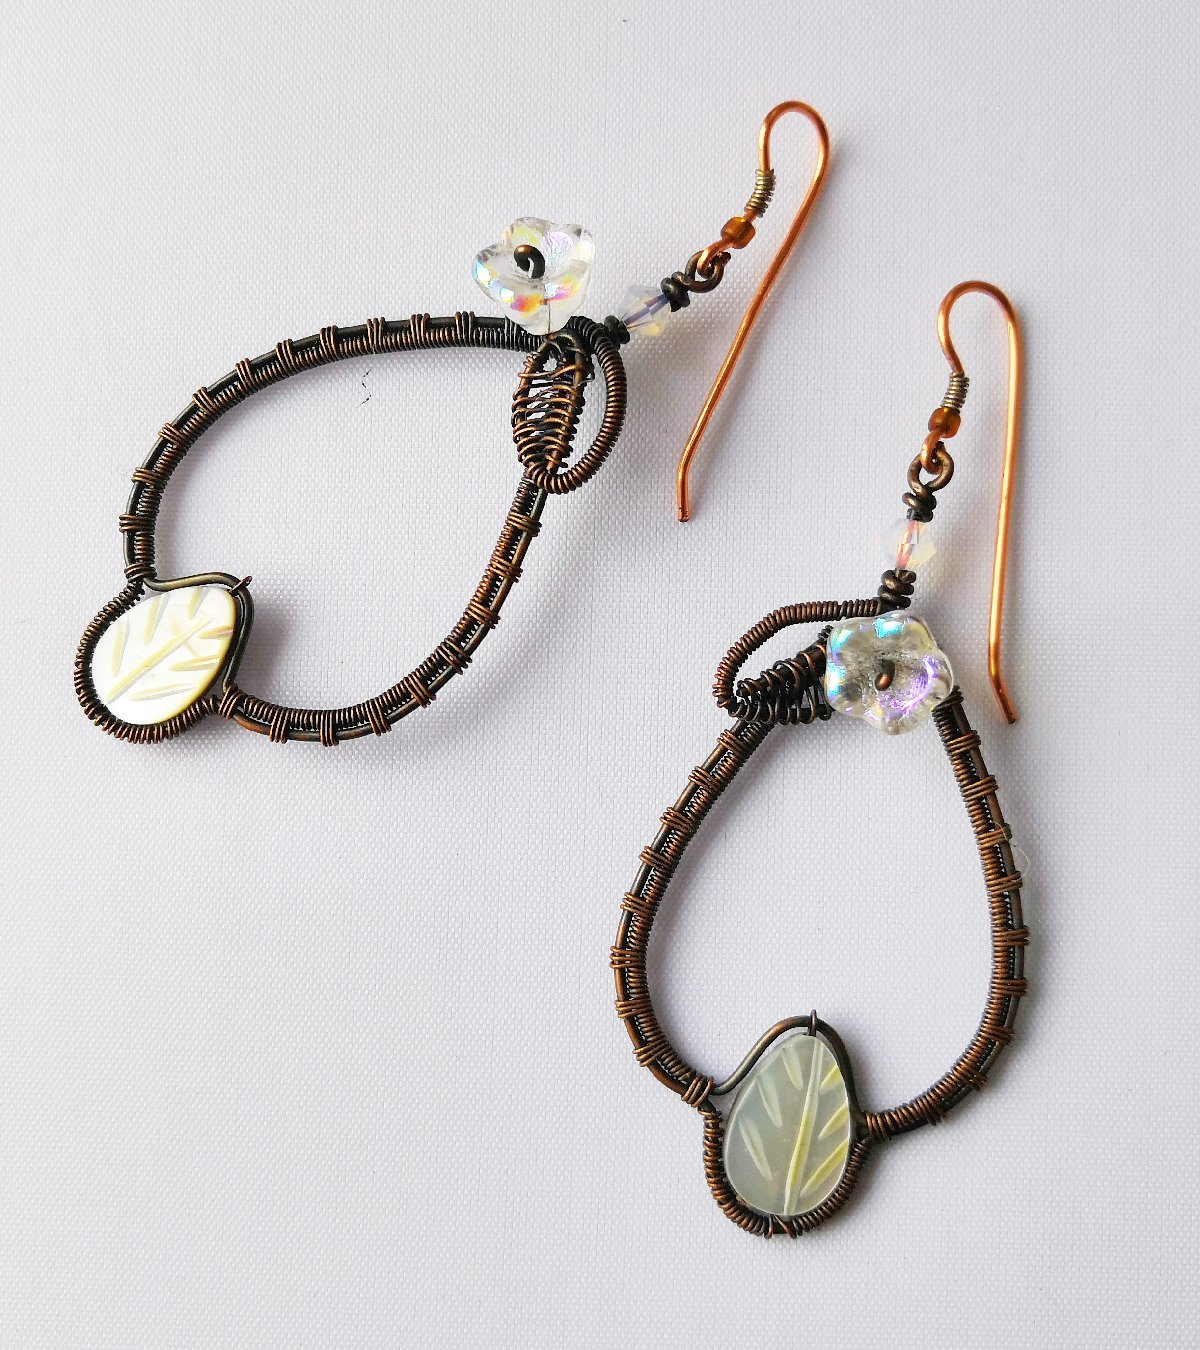 Evensong drop earrings